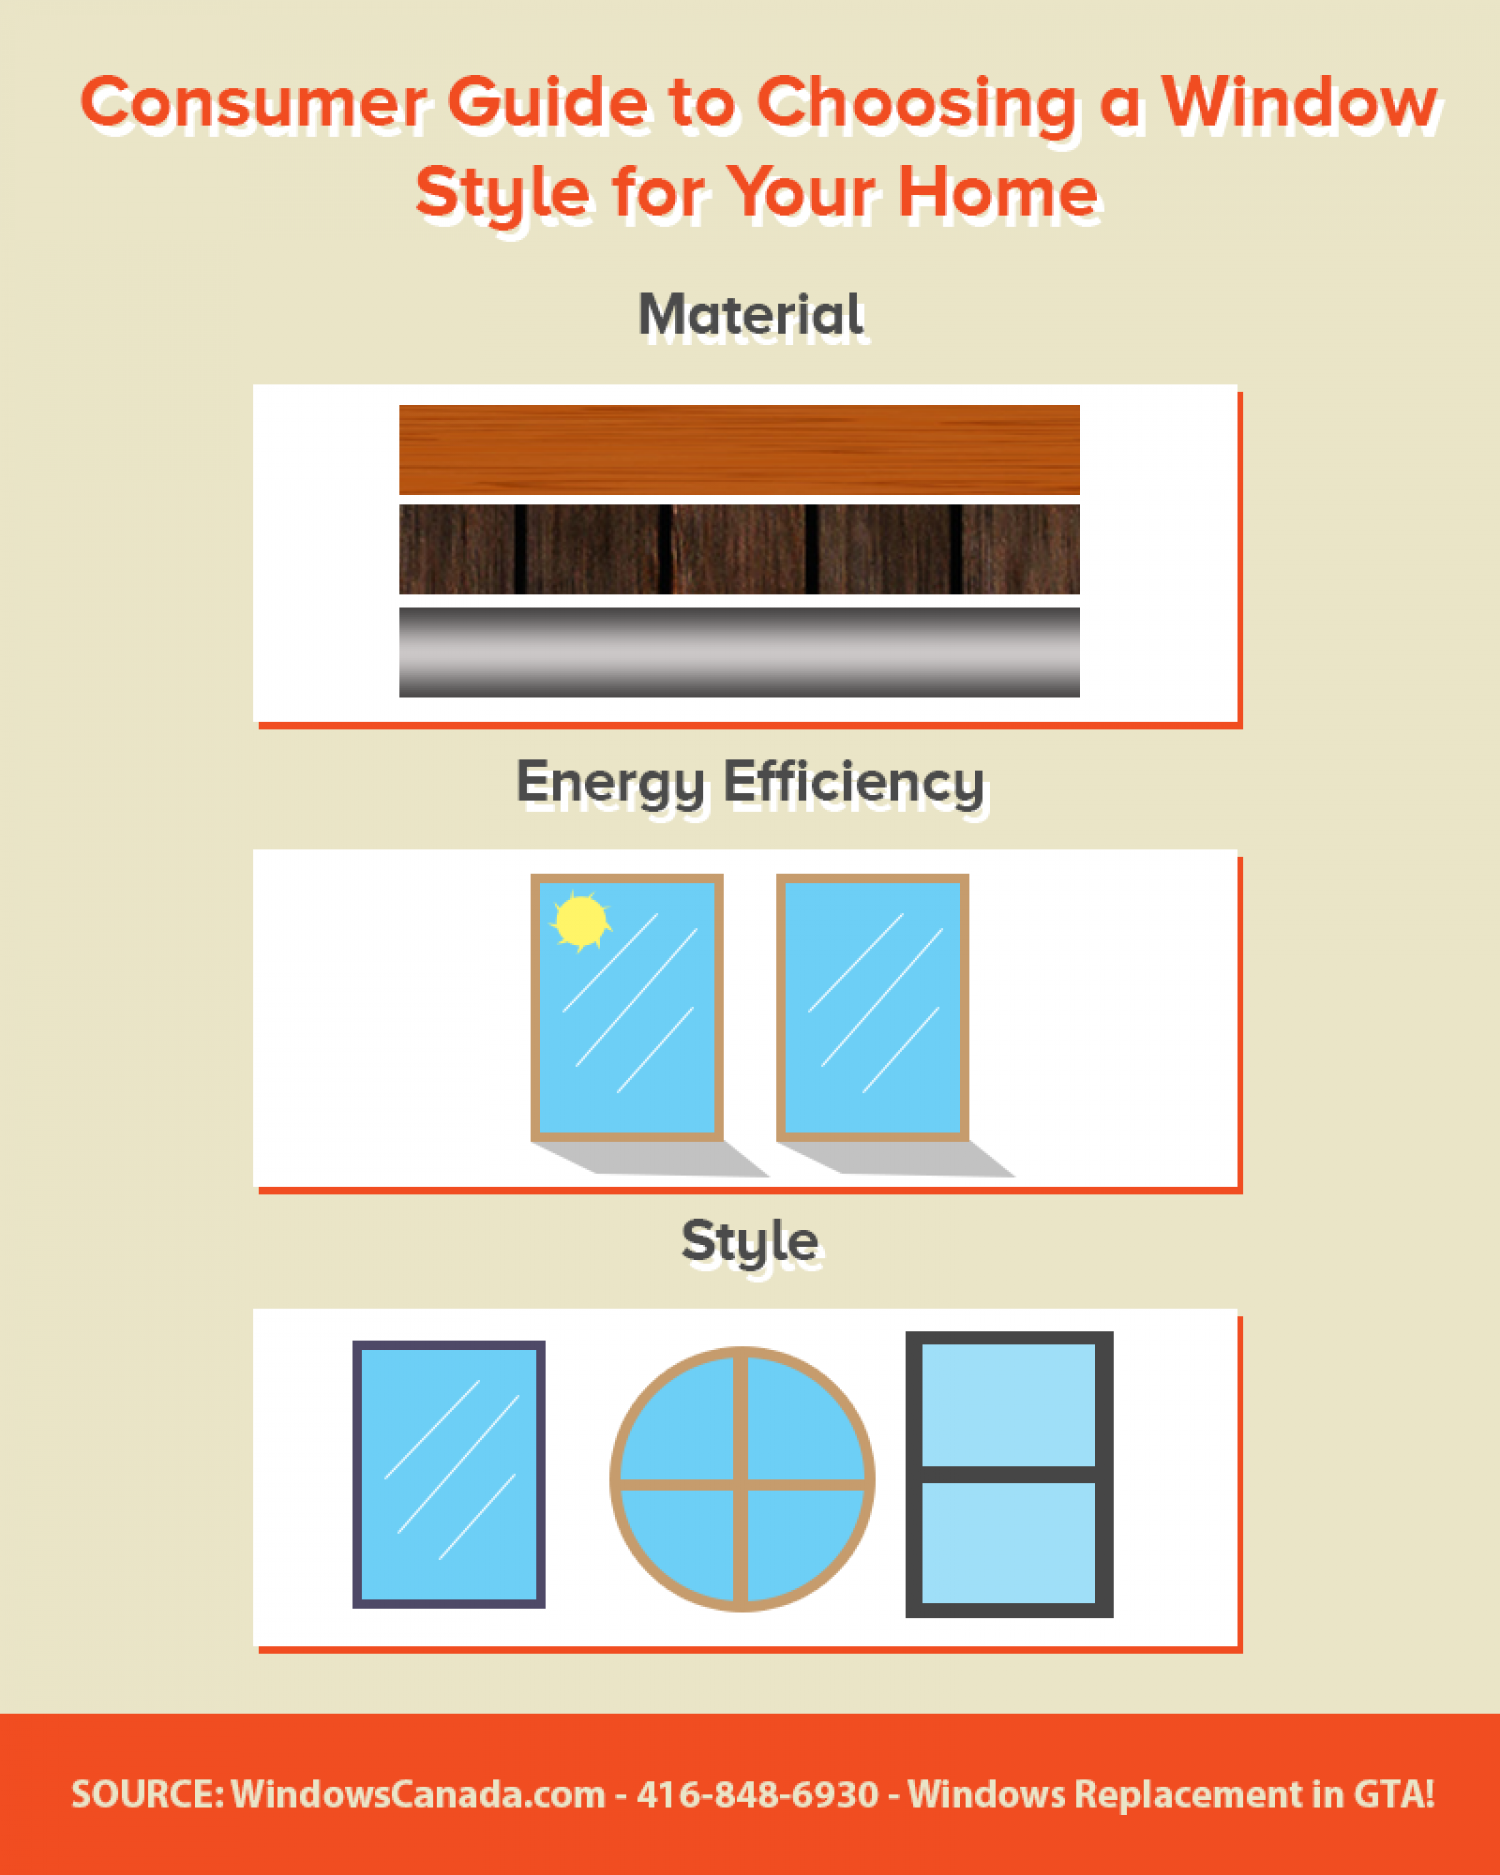 Consumer Guides: Consumer Guide To Choosing A Window Style For Your Home